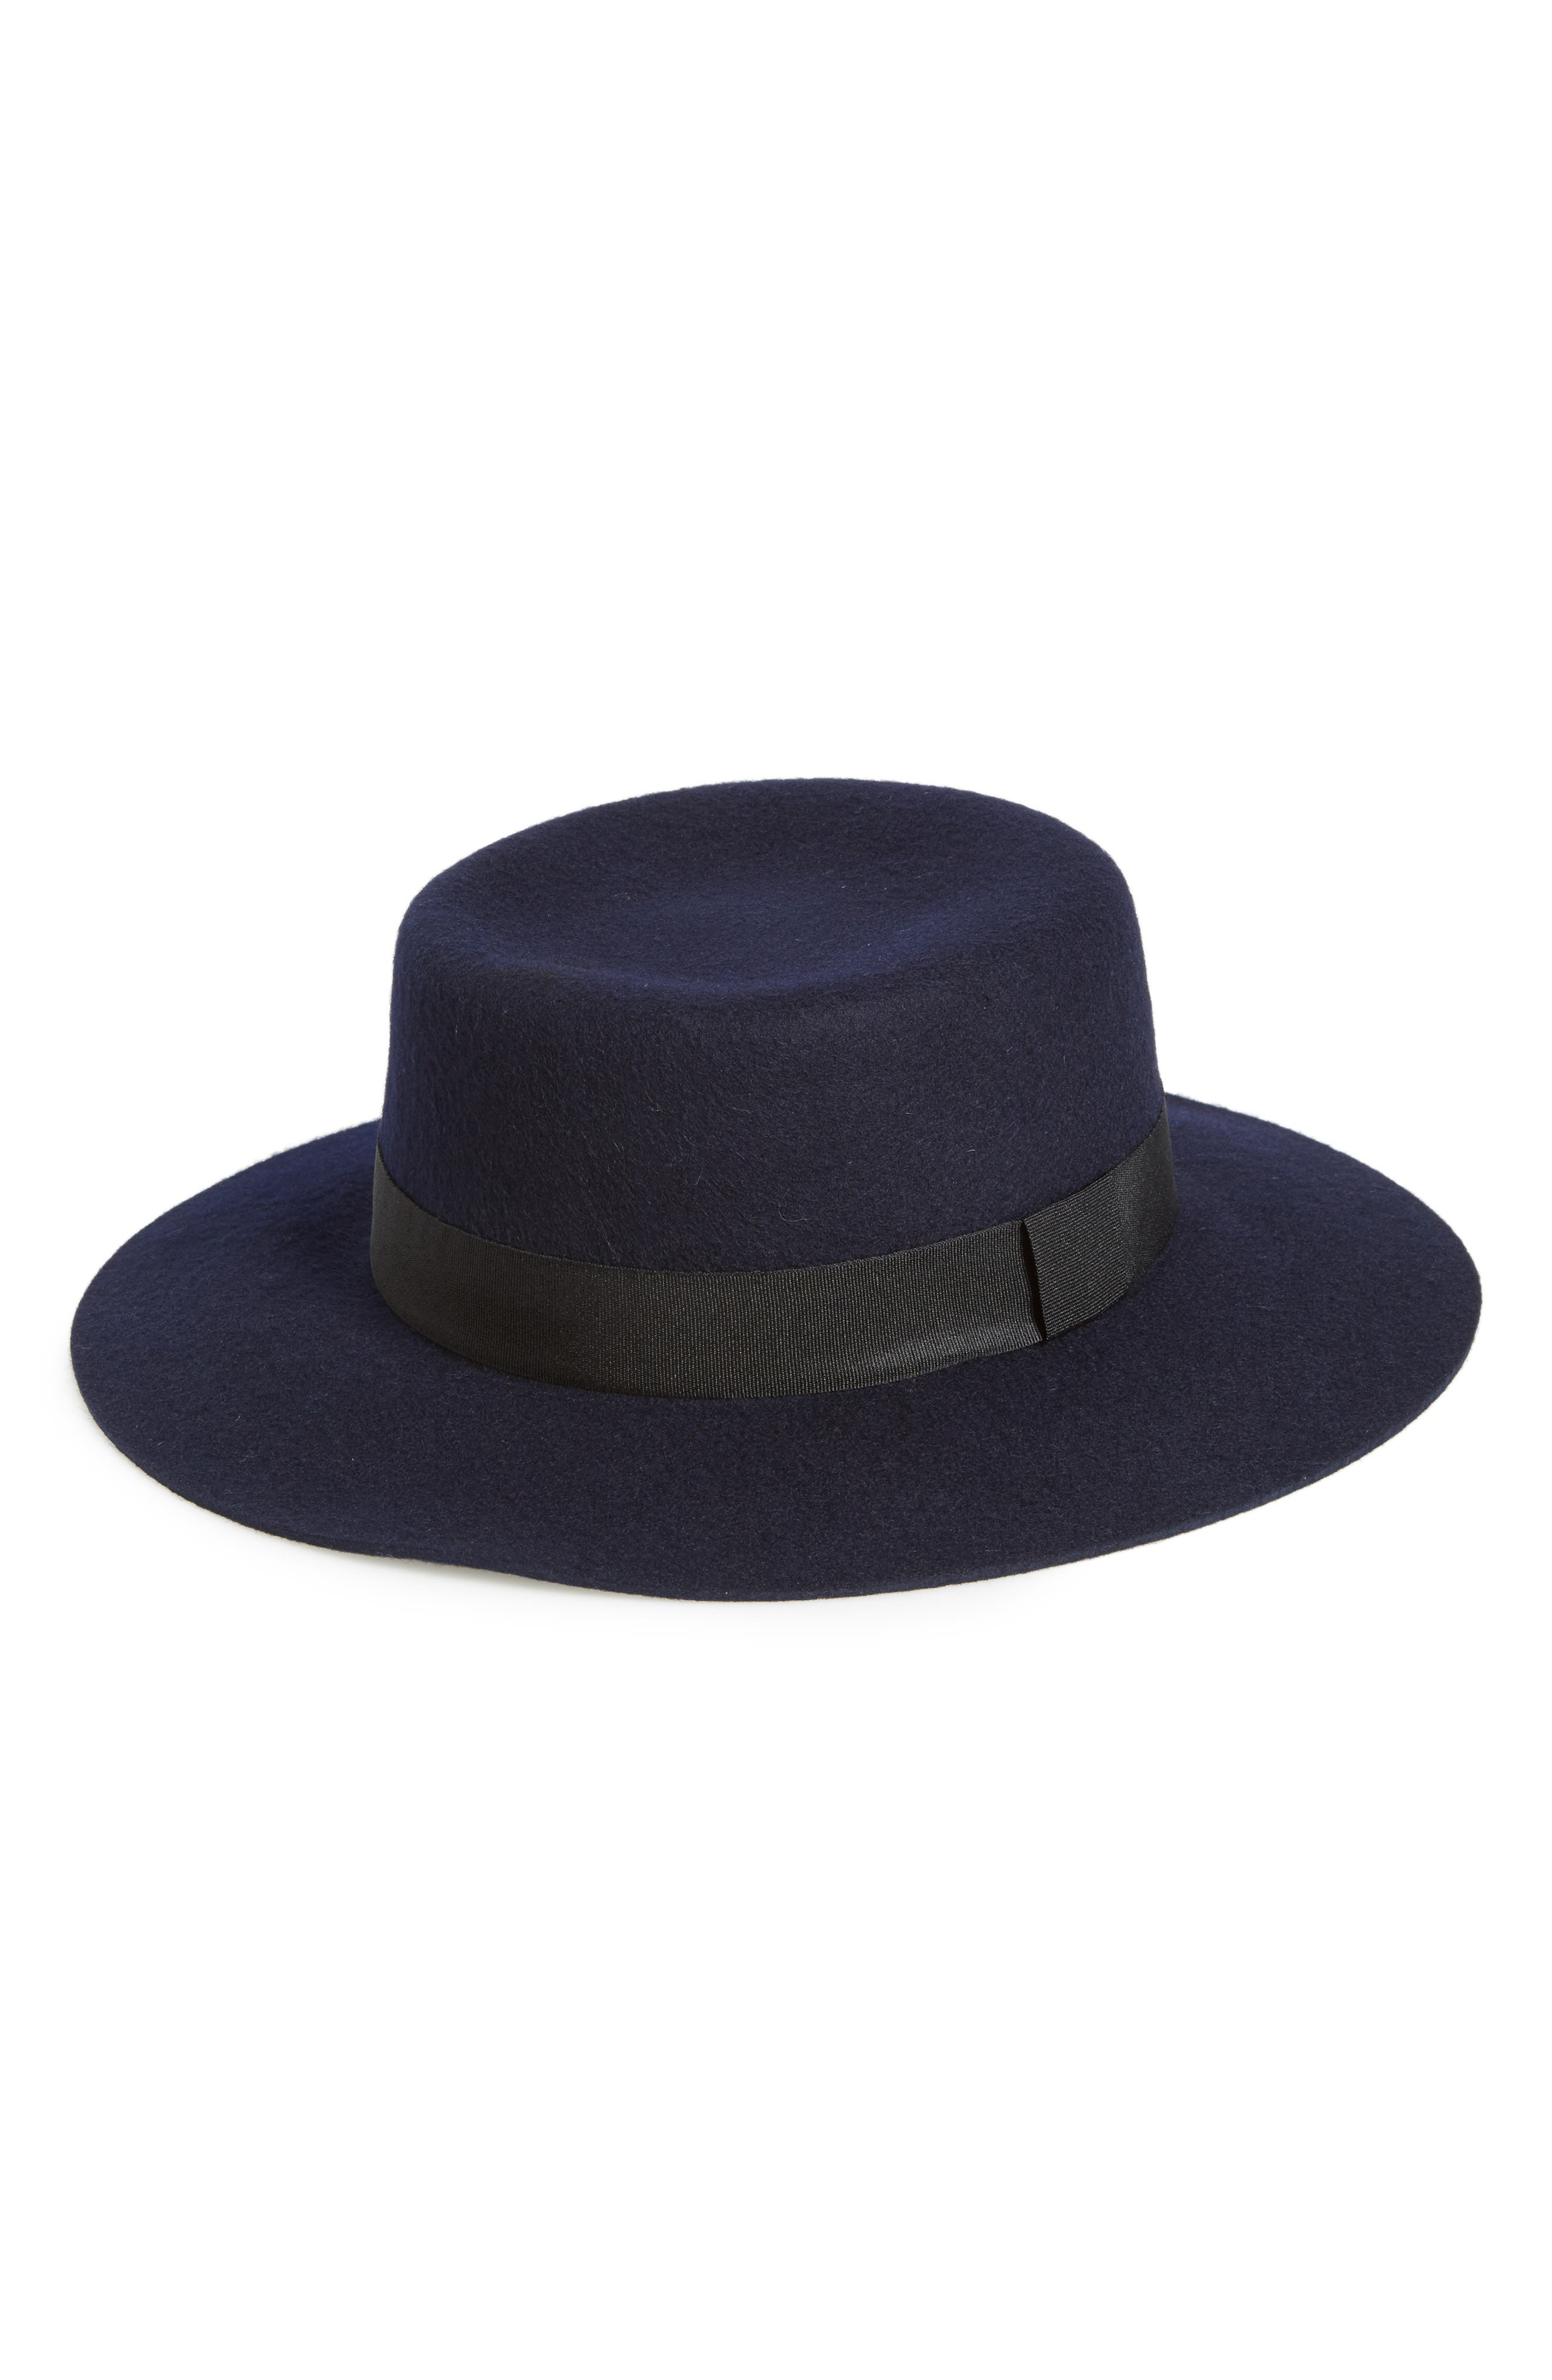 Titanic Hats History – Edwardian Ladies Hats Womens Fits Wool Felt Boater - Blue $9.98 AT vintagedancer.com